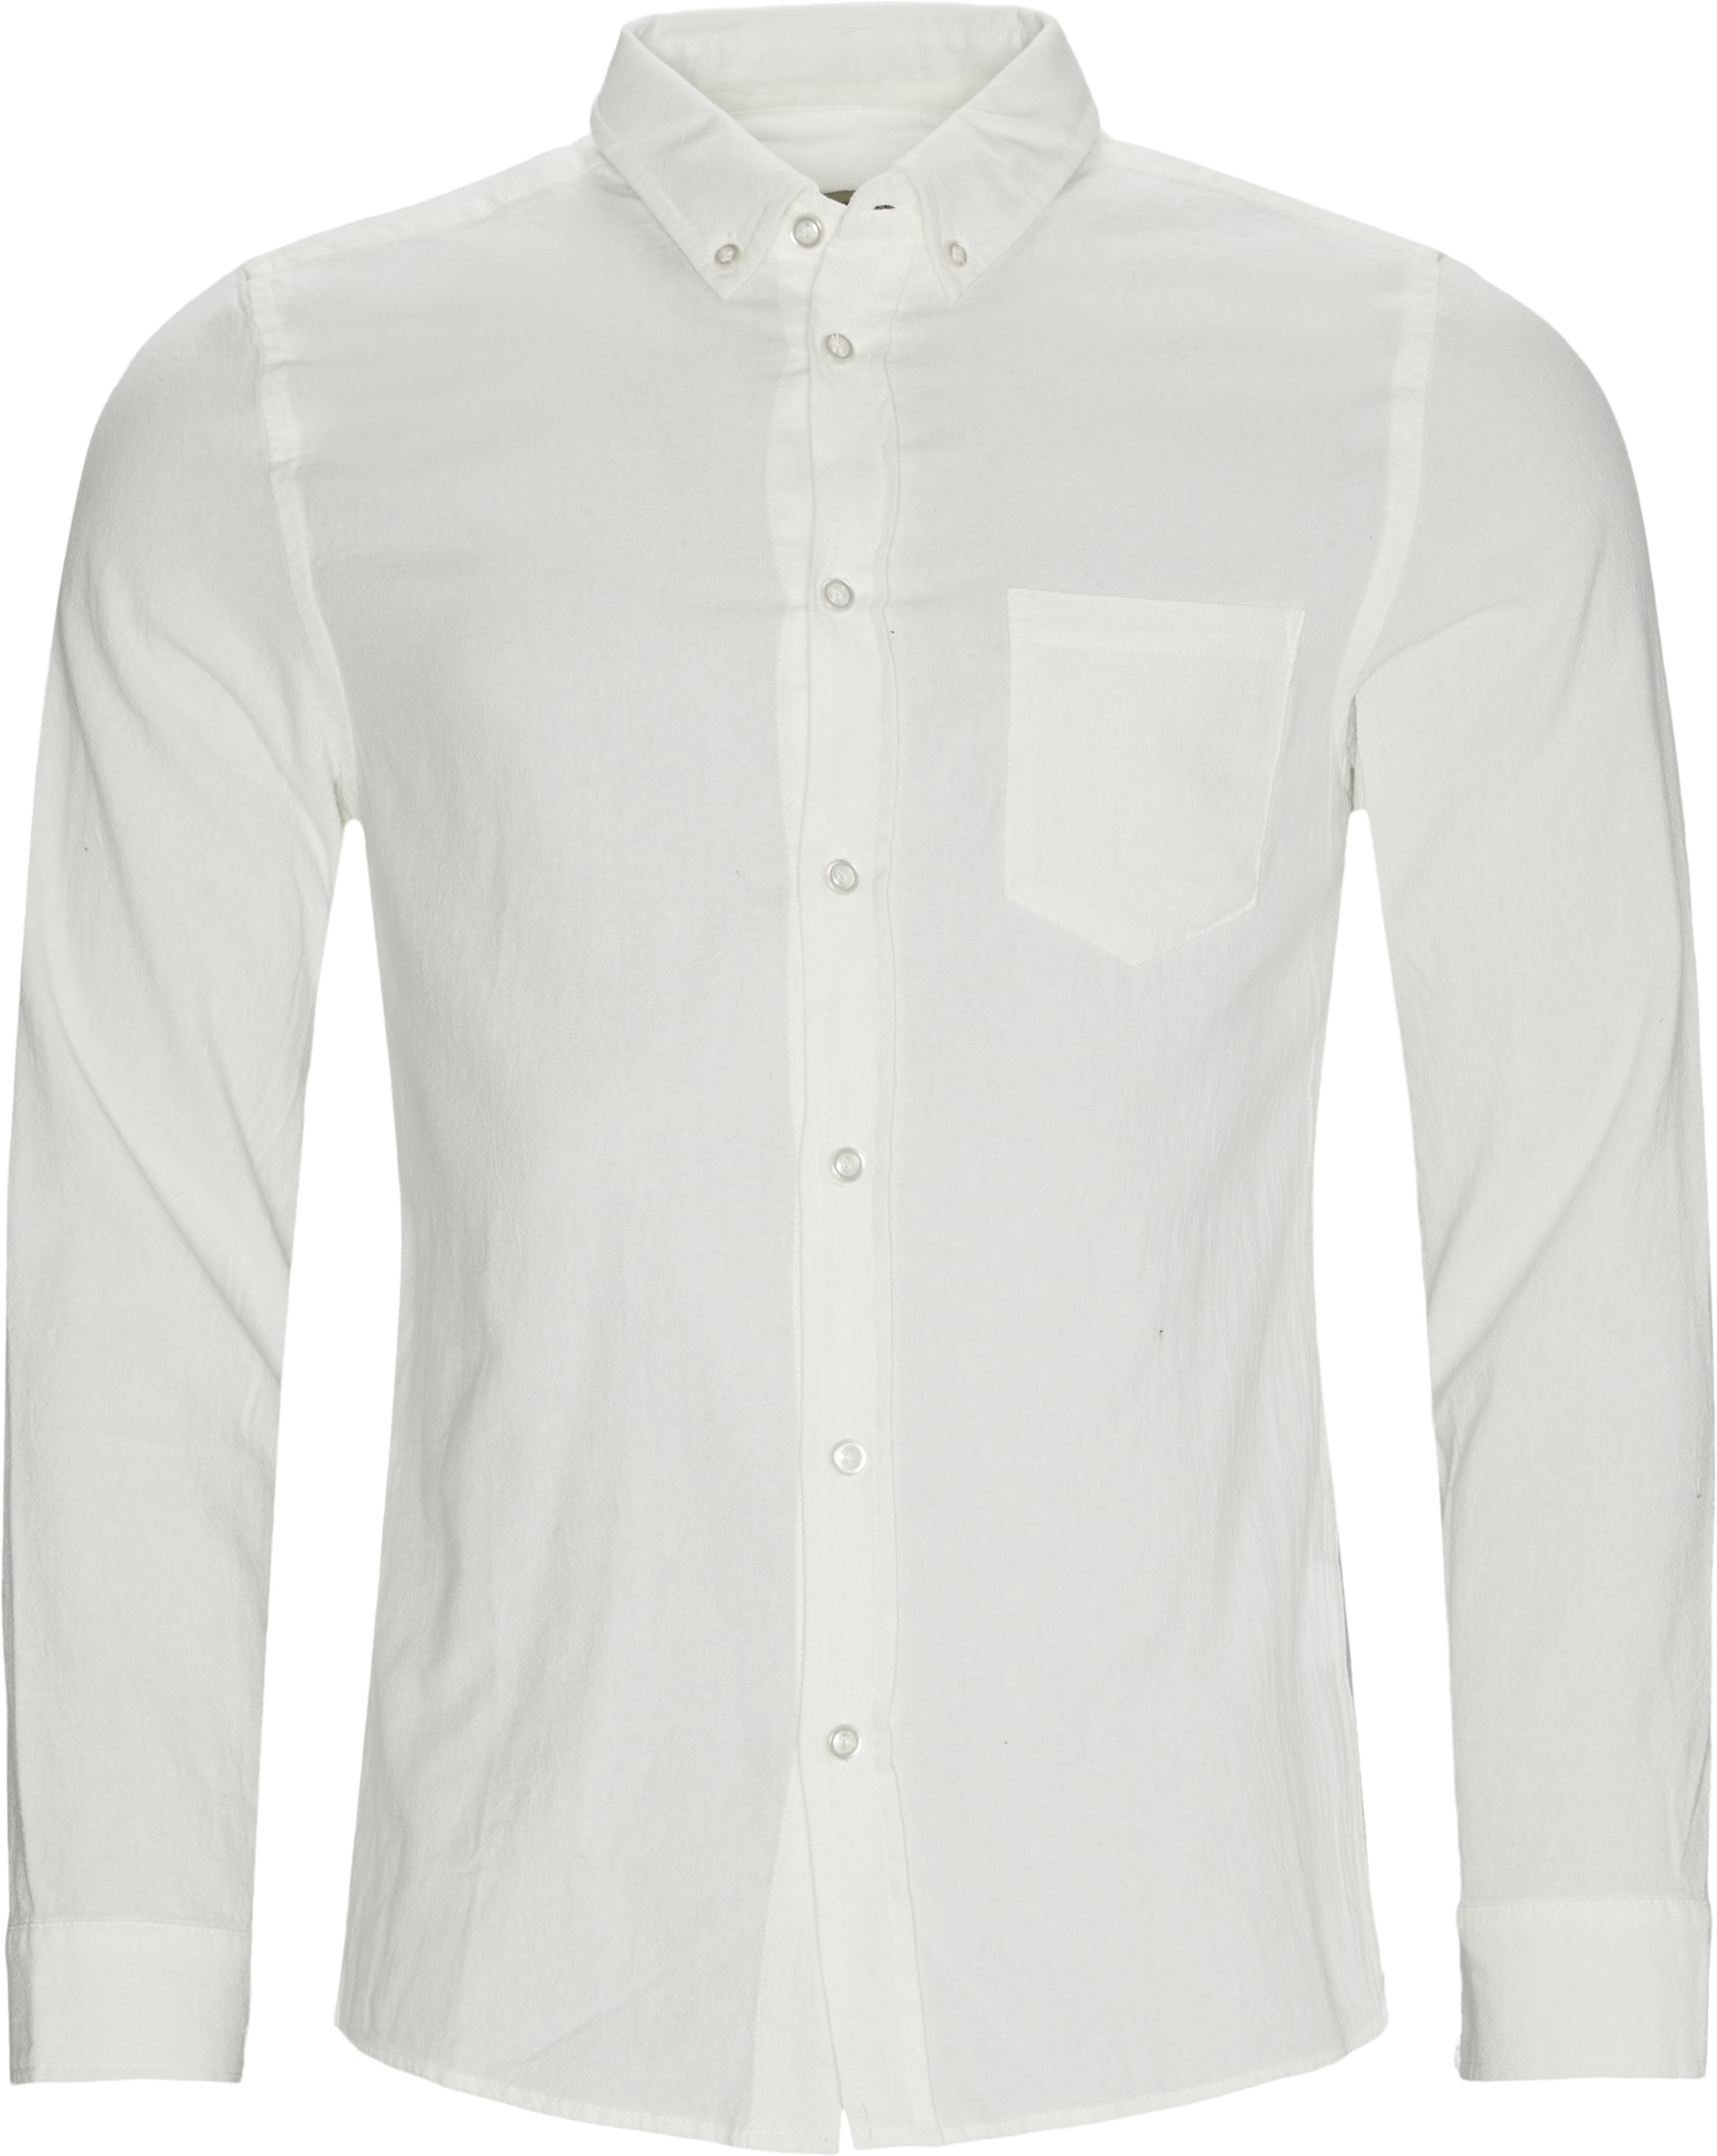 Lagos Shirt - Skjortor - Regular - Vit